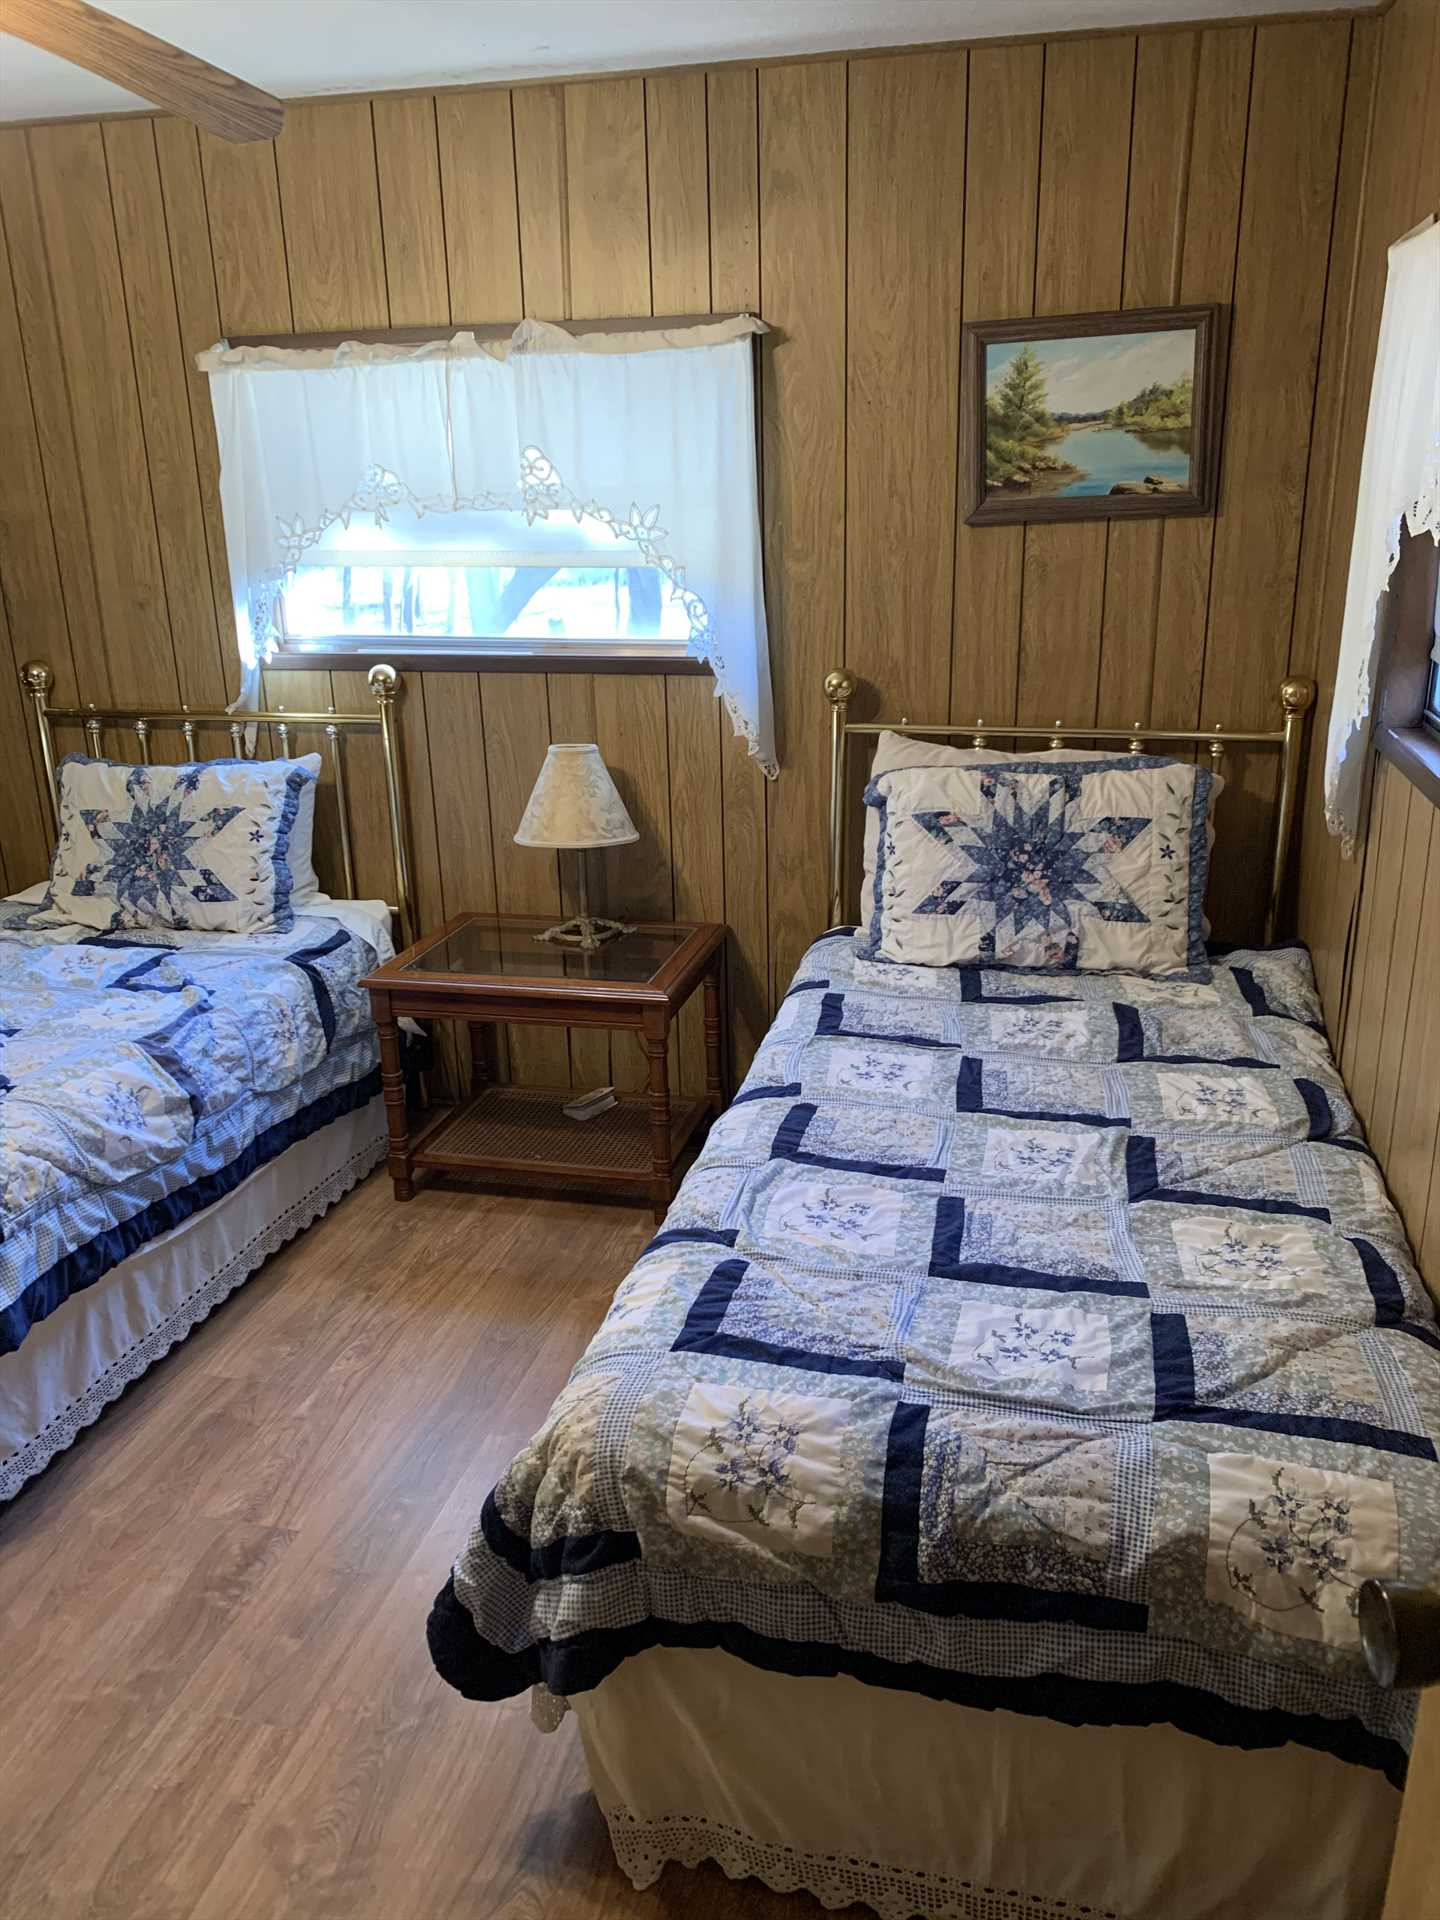 Two more guests can sleep in soft comfort in the second bedroom, equipped with matching twin beds.